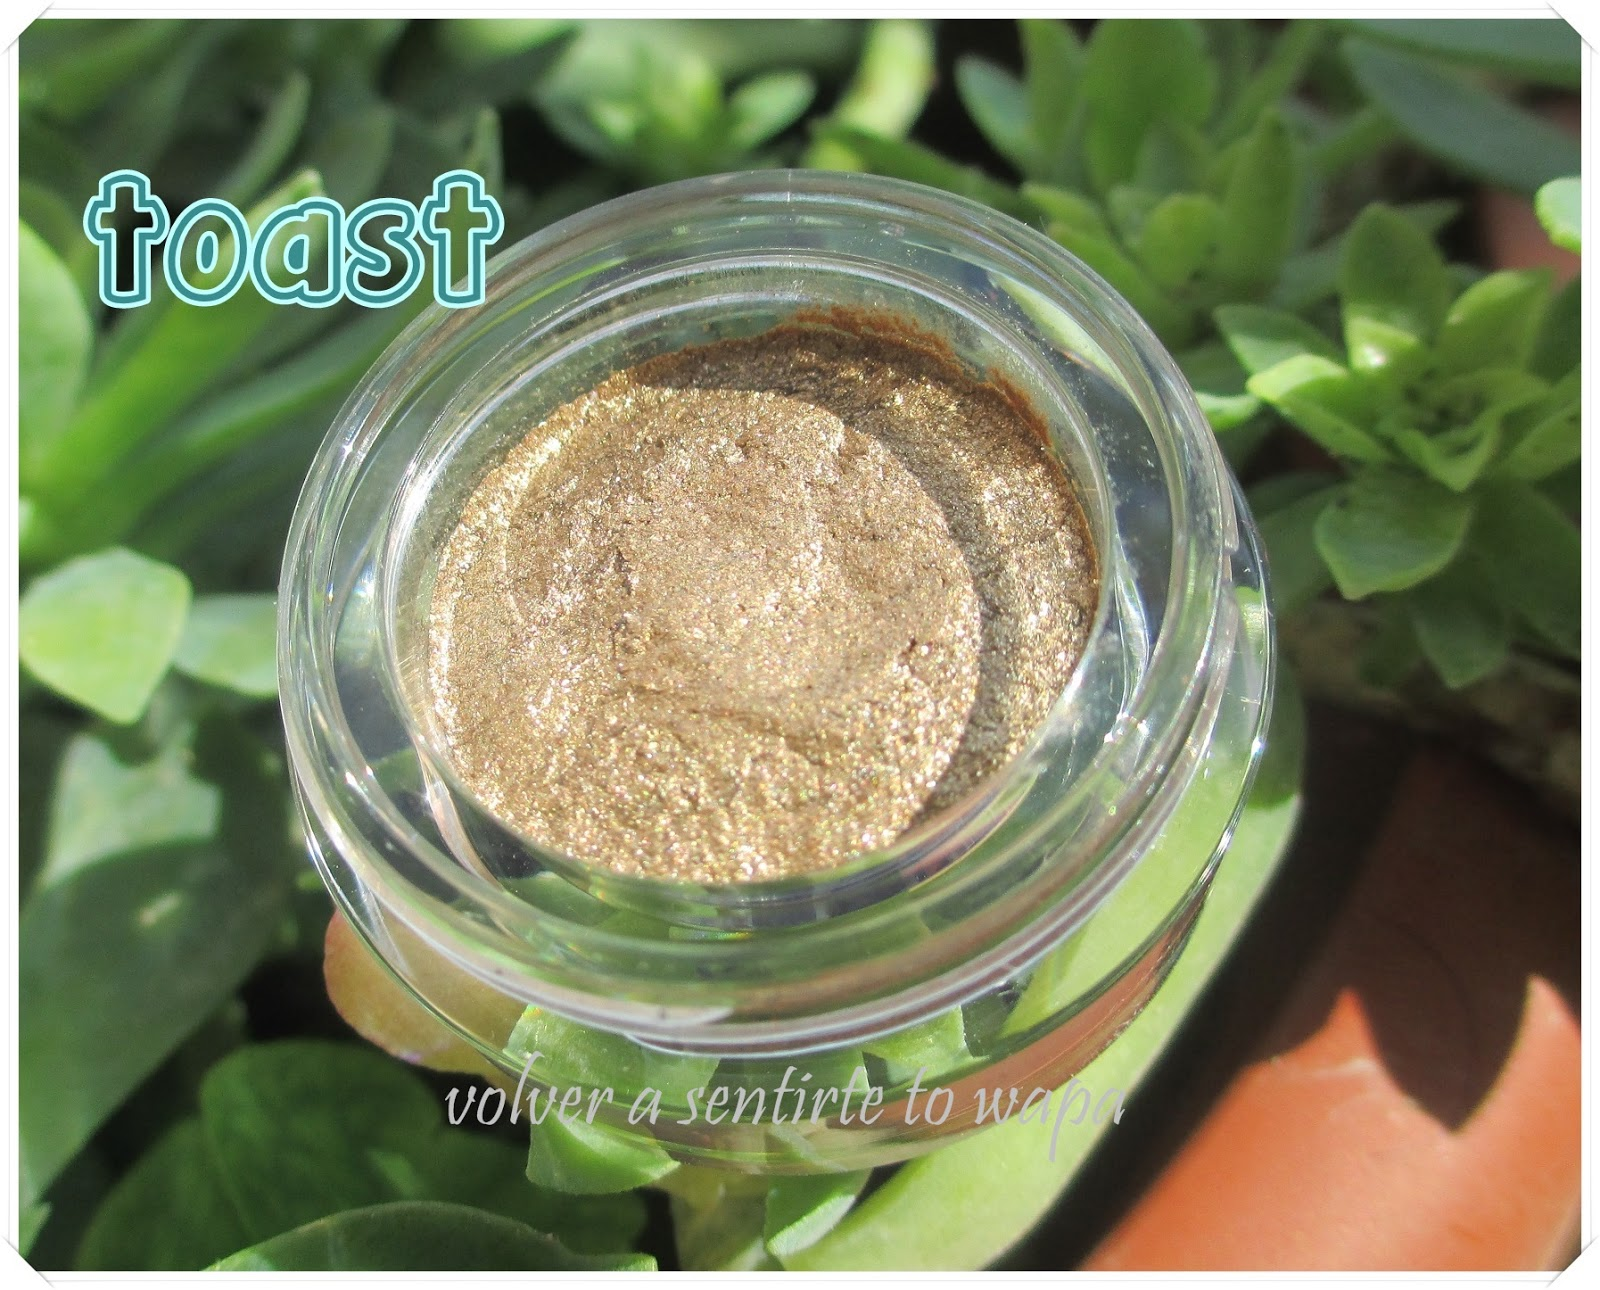 Long-lasting lustrous eyeshadow de elf - Toast